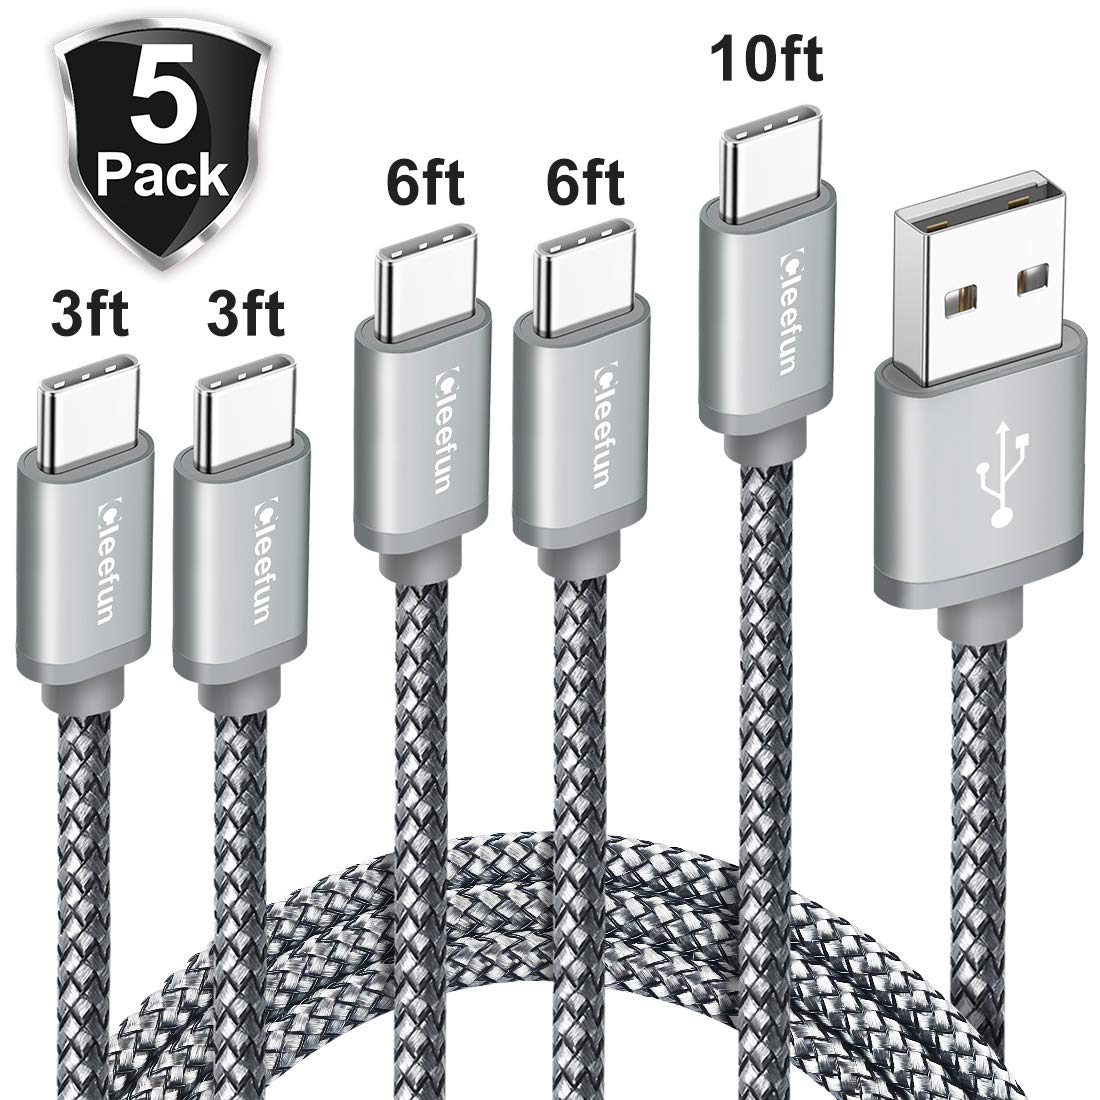 CLEEFUN USB Type C Charger Cable [5-Pack, 3/3/6/6/10 ft], Durable Nylon Braided Cord, Data Transfer and Fast Charging Cable for Samsung Galaxy Note 10/10Plus/9/8, S10E, S10 S9 S8 Plus, A70 A50 A30 A20